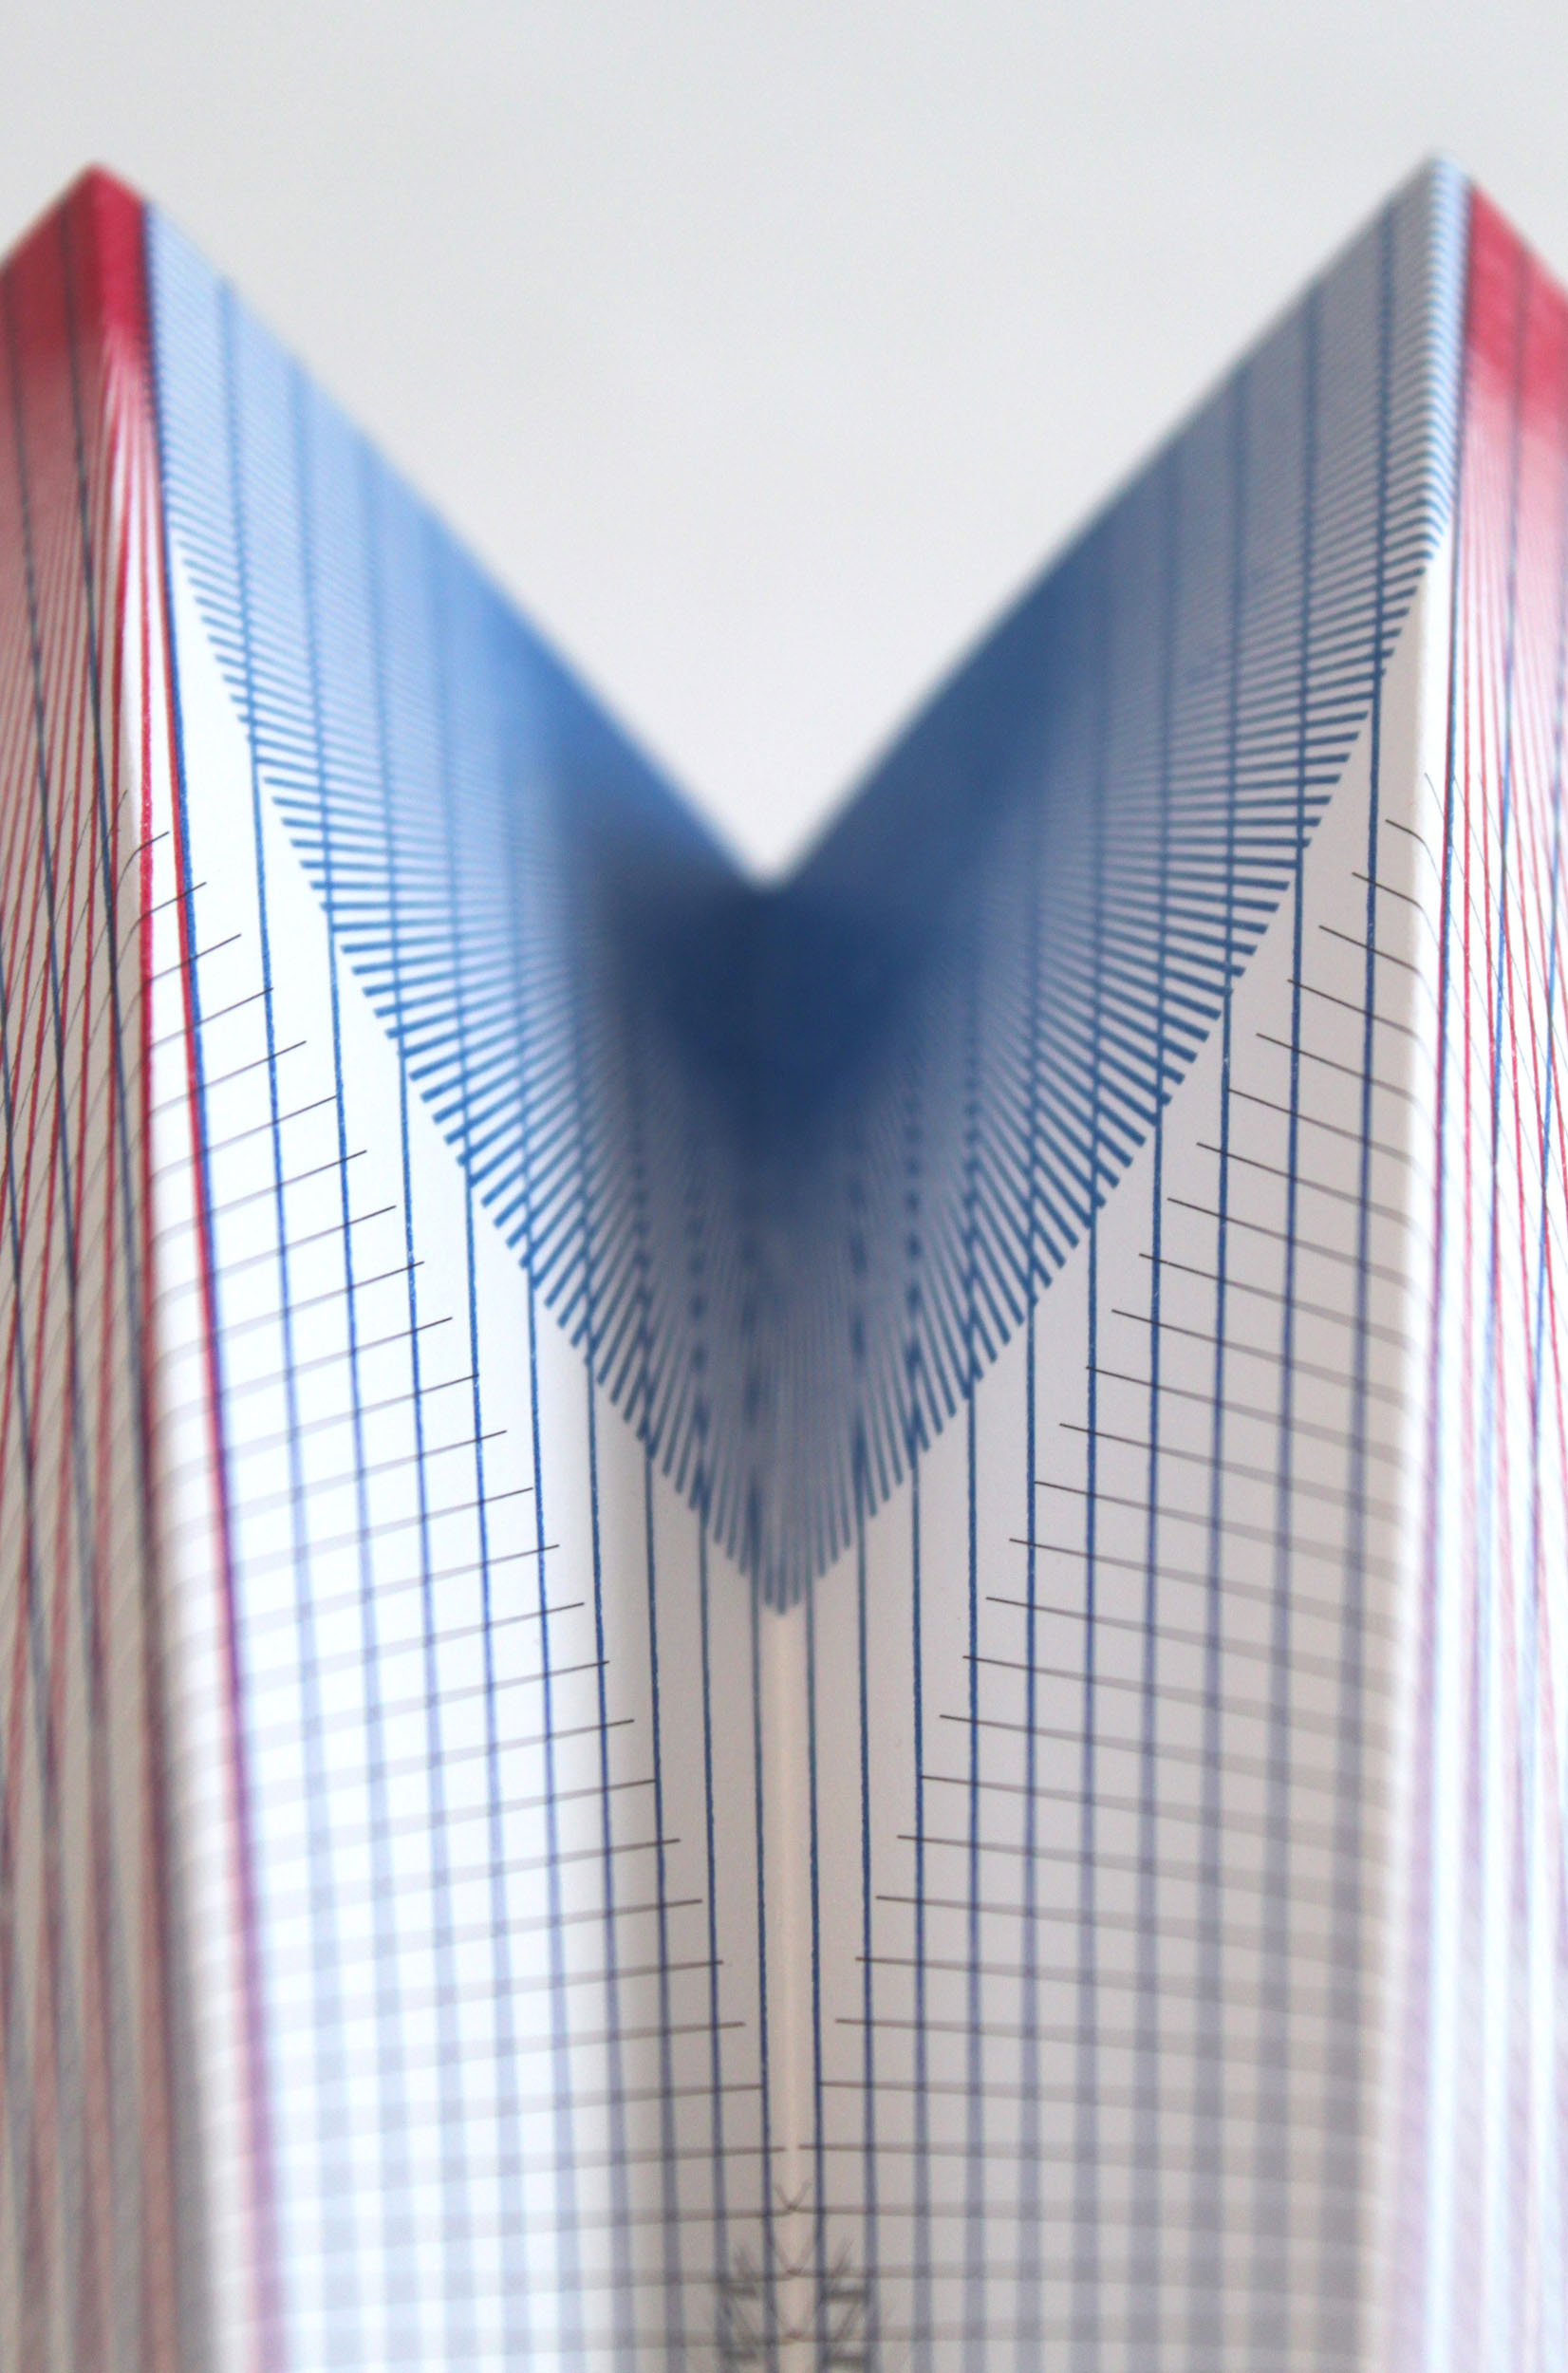 A detail of a printed Paper Plane fin